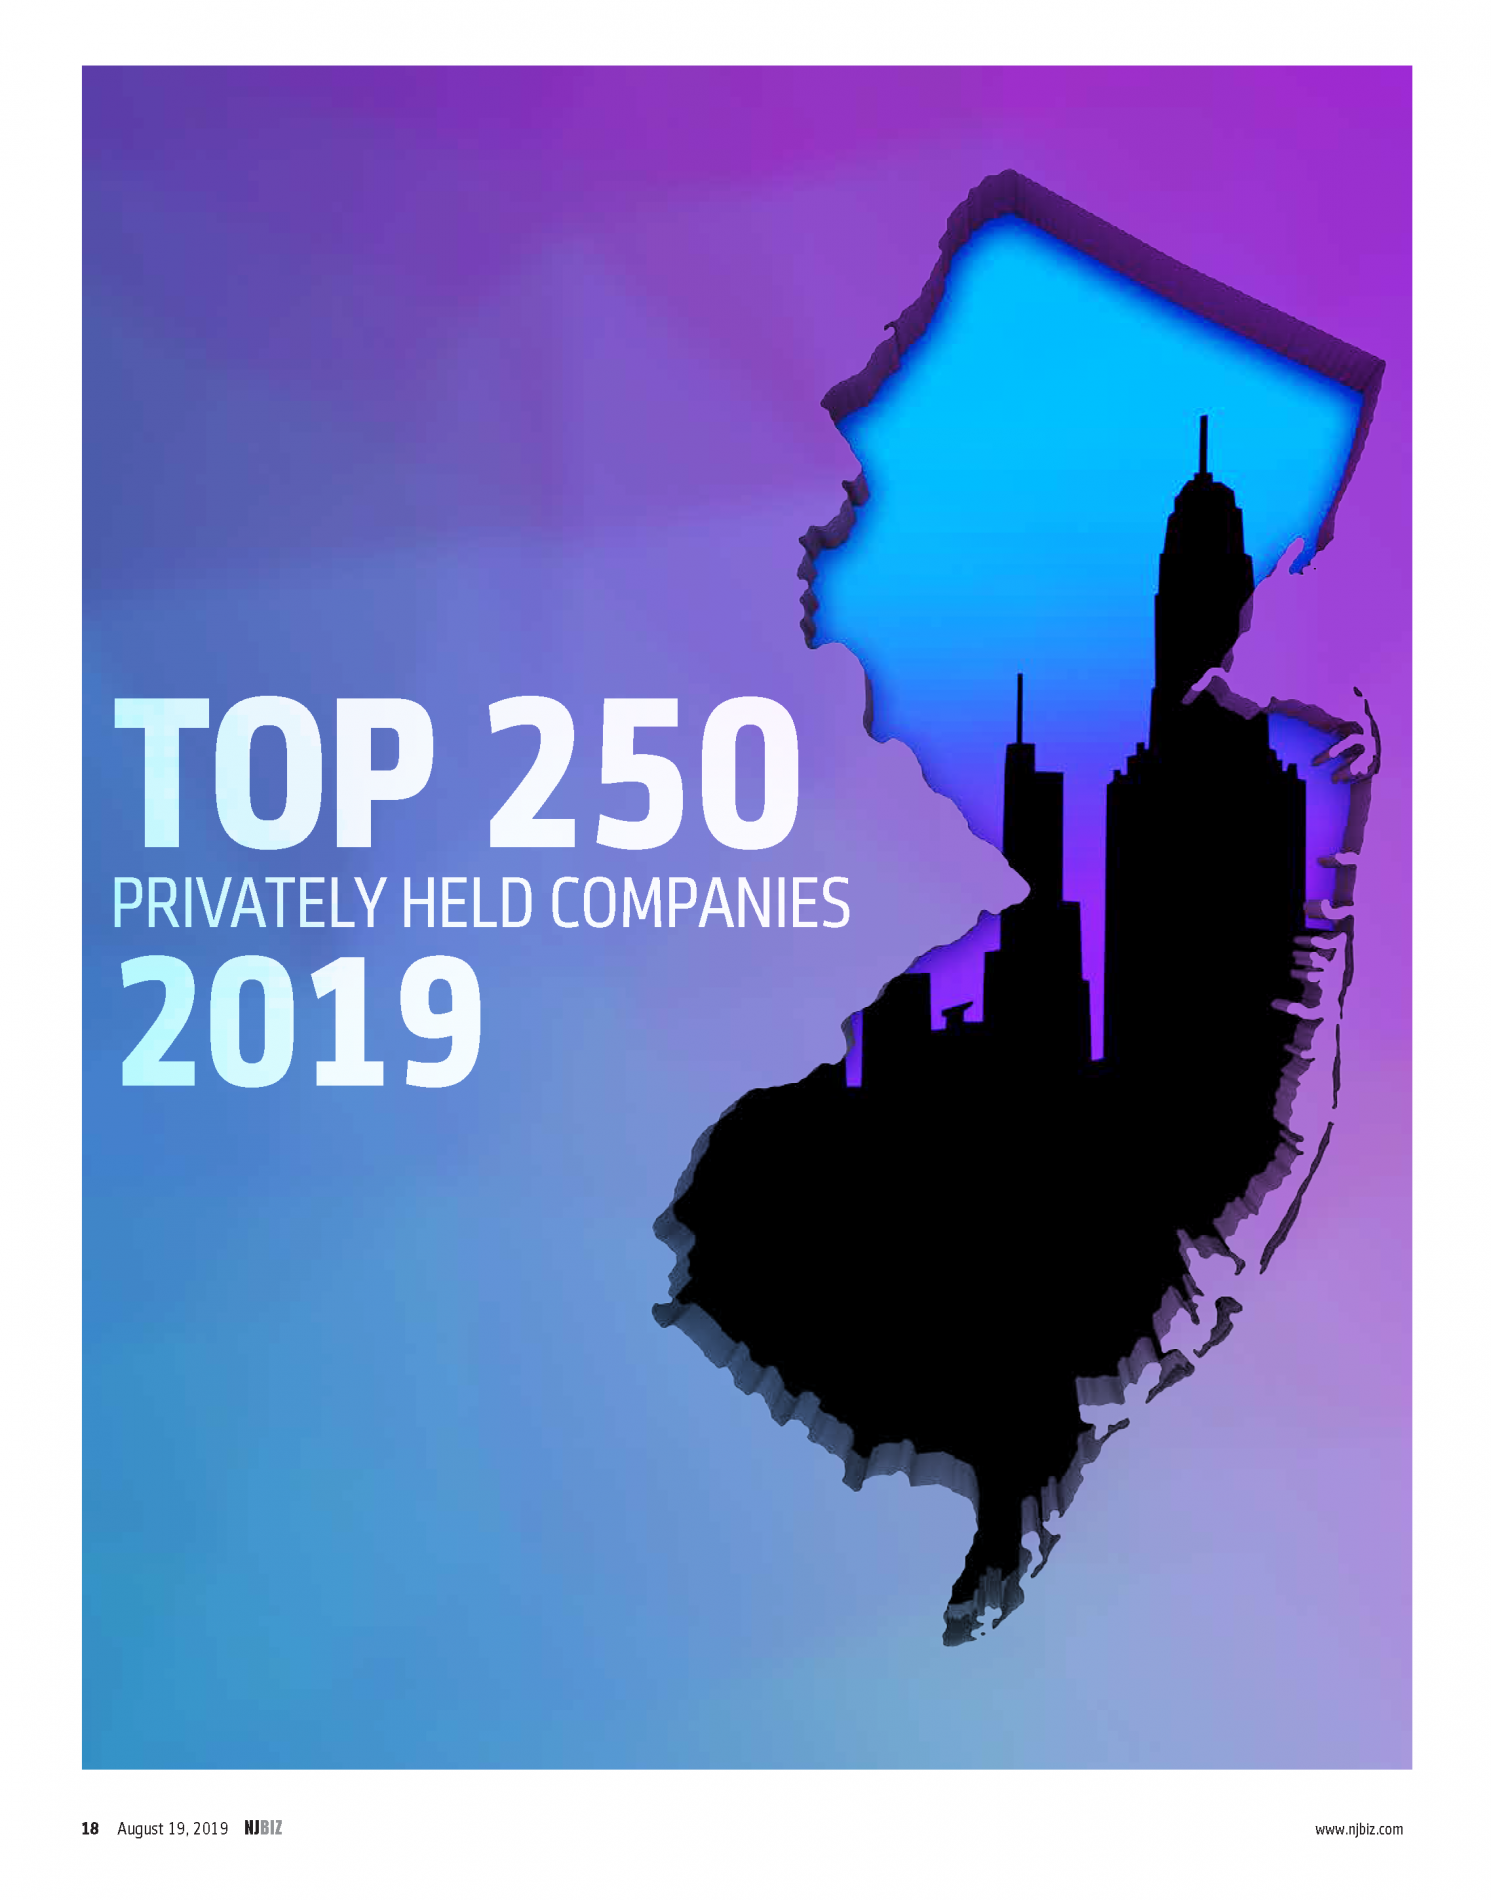 Port Jersey Logistics Moves Up To #107 On NJBIZ's Top 250 Privately Held Companies List